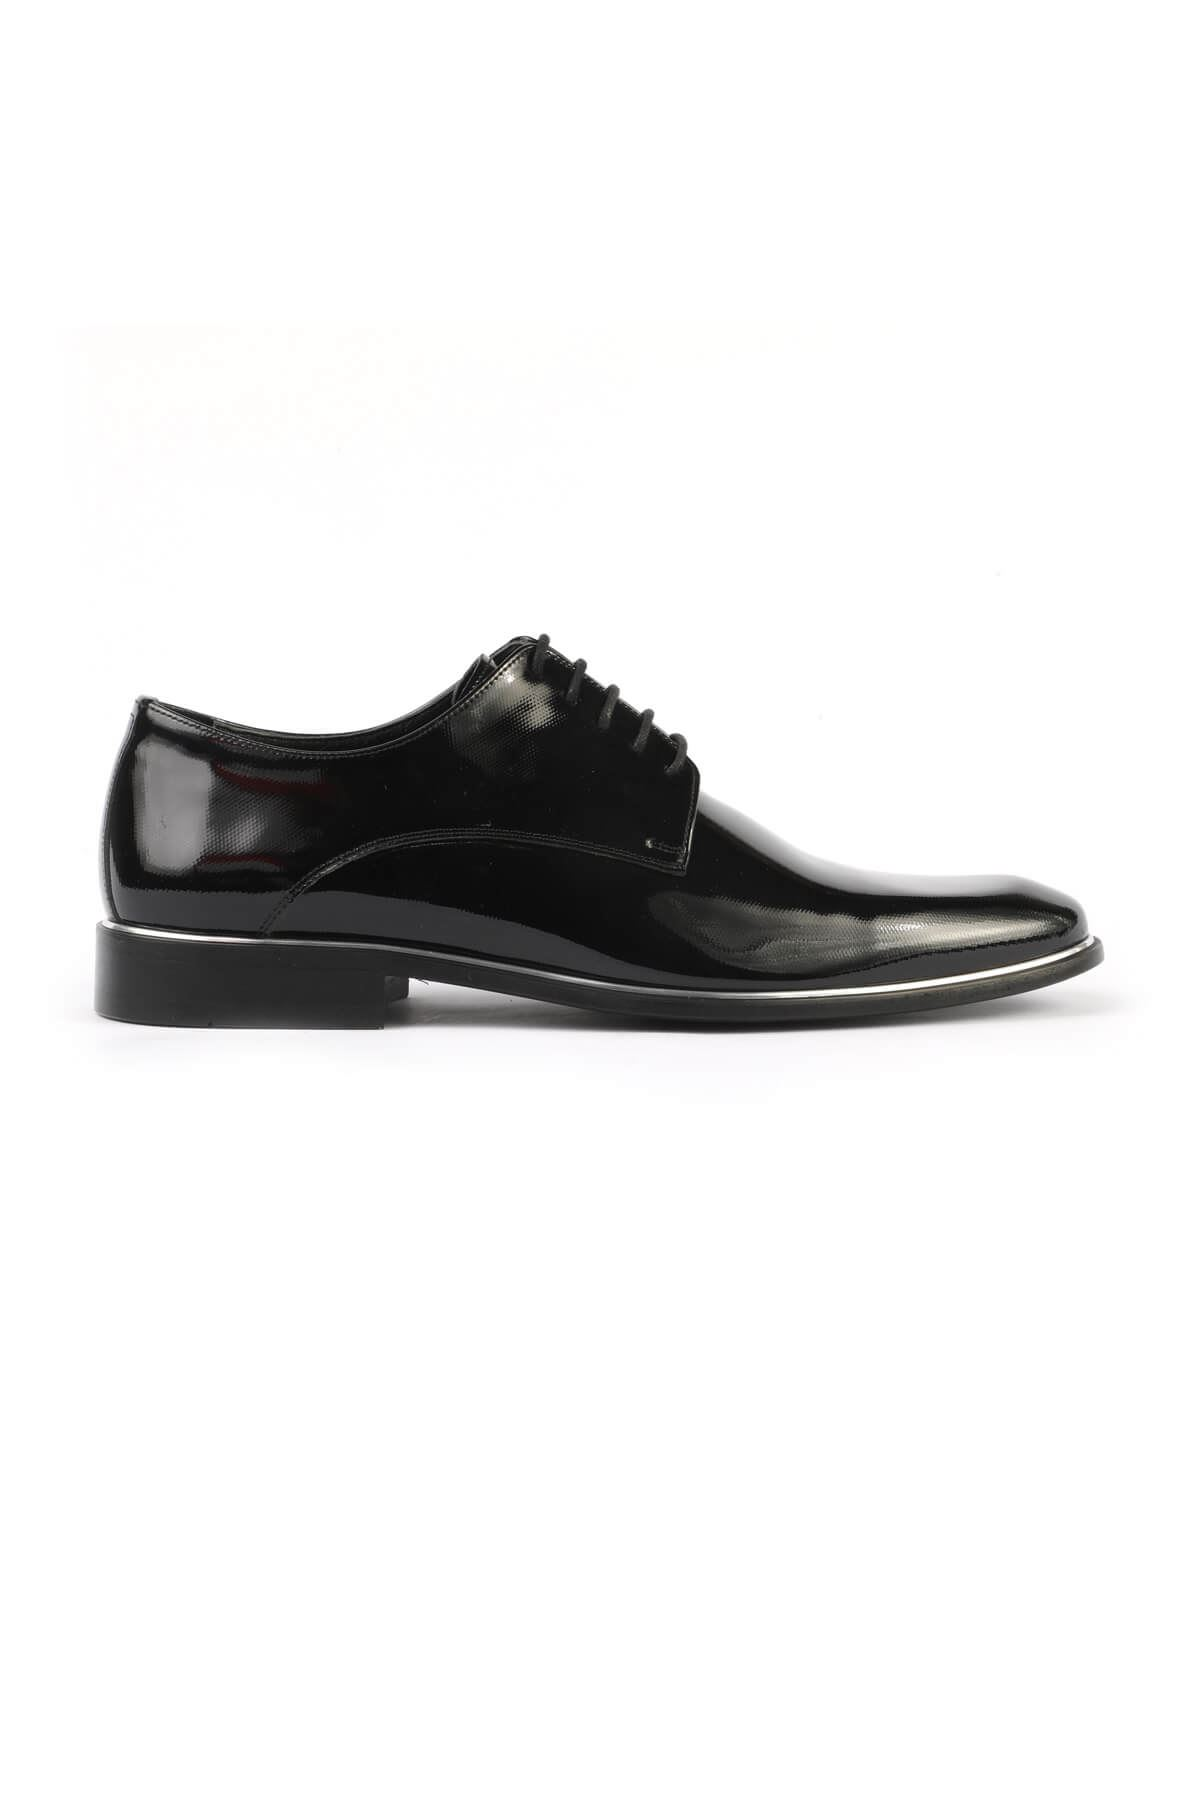 Libero 2140 Black Classic Shoes